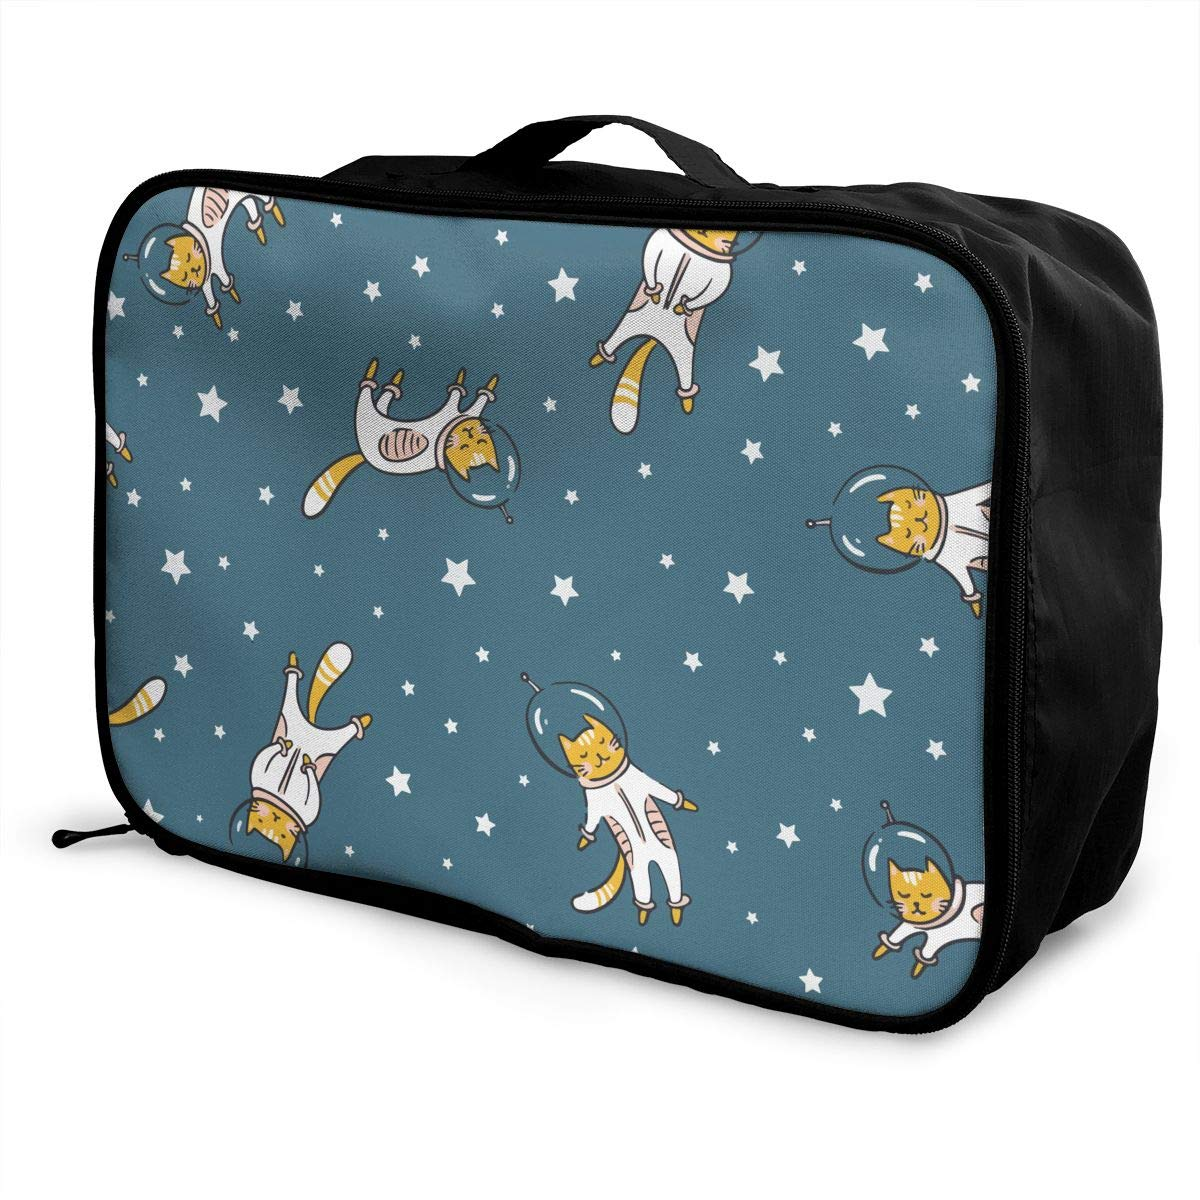 Funny Cat Astronaut Space Travel Duffel Bag Casual Large Capacity Portable Luggage Bag Suitcase Storage Bag Luggage Packing Tote Bag Weekend Trip